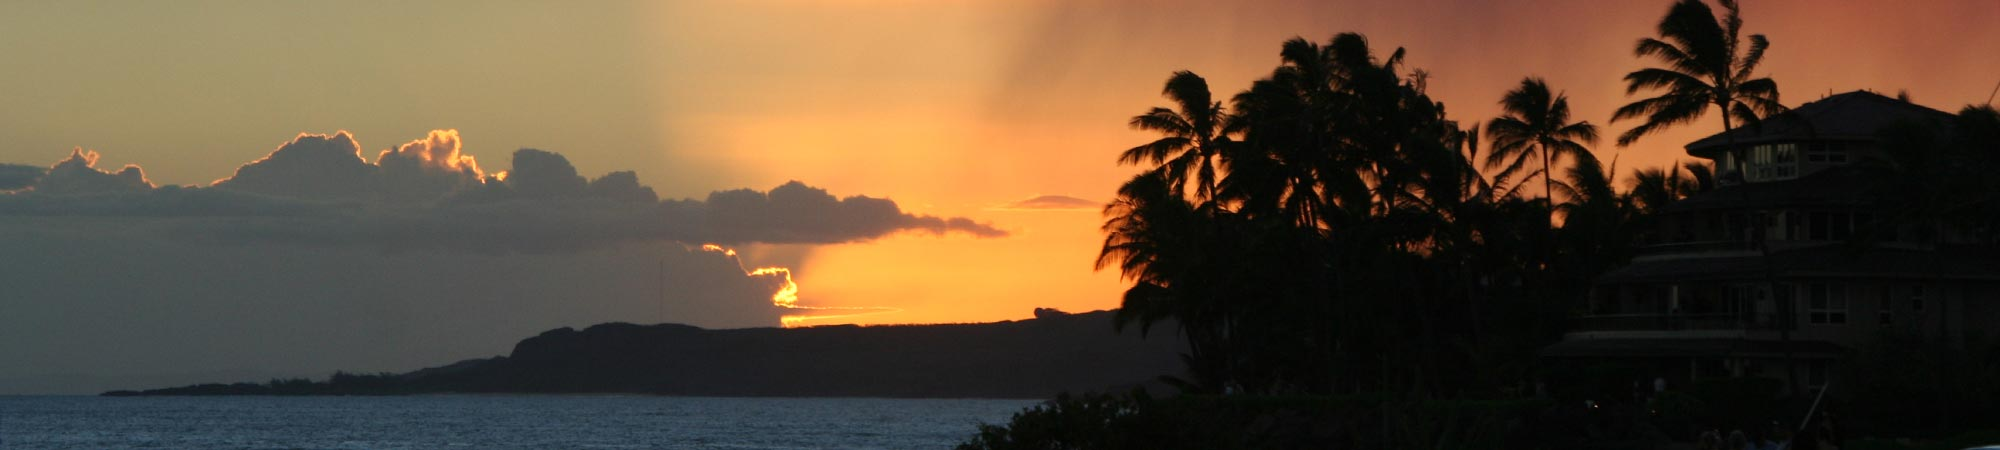 sunset over ocean from Alihi Lani luxury vacation rental, Poipu Beach, Kauai